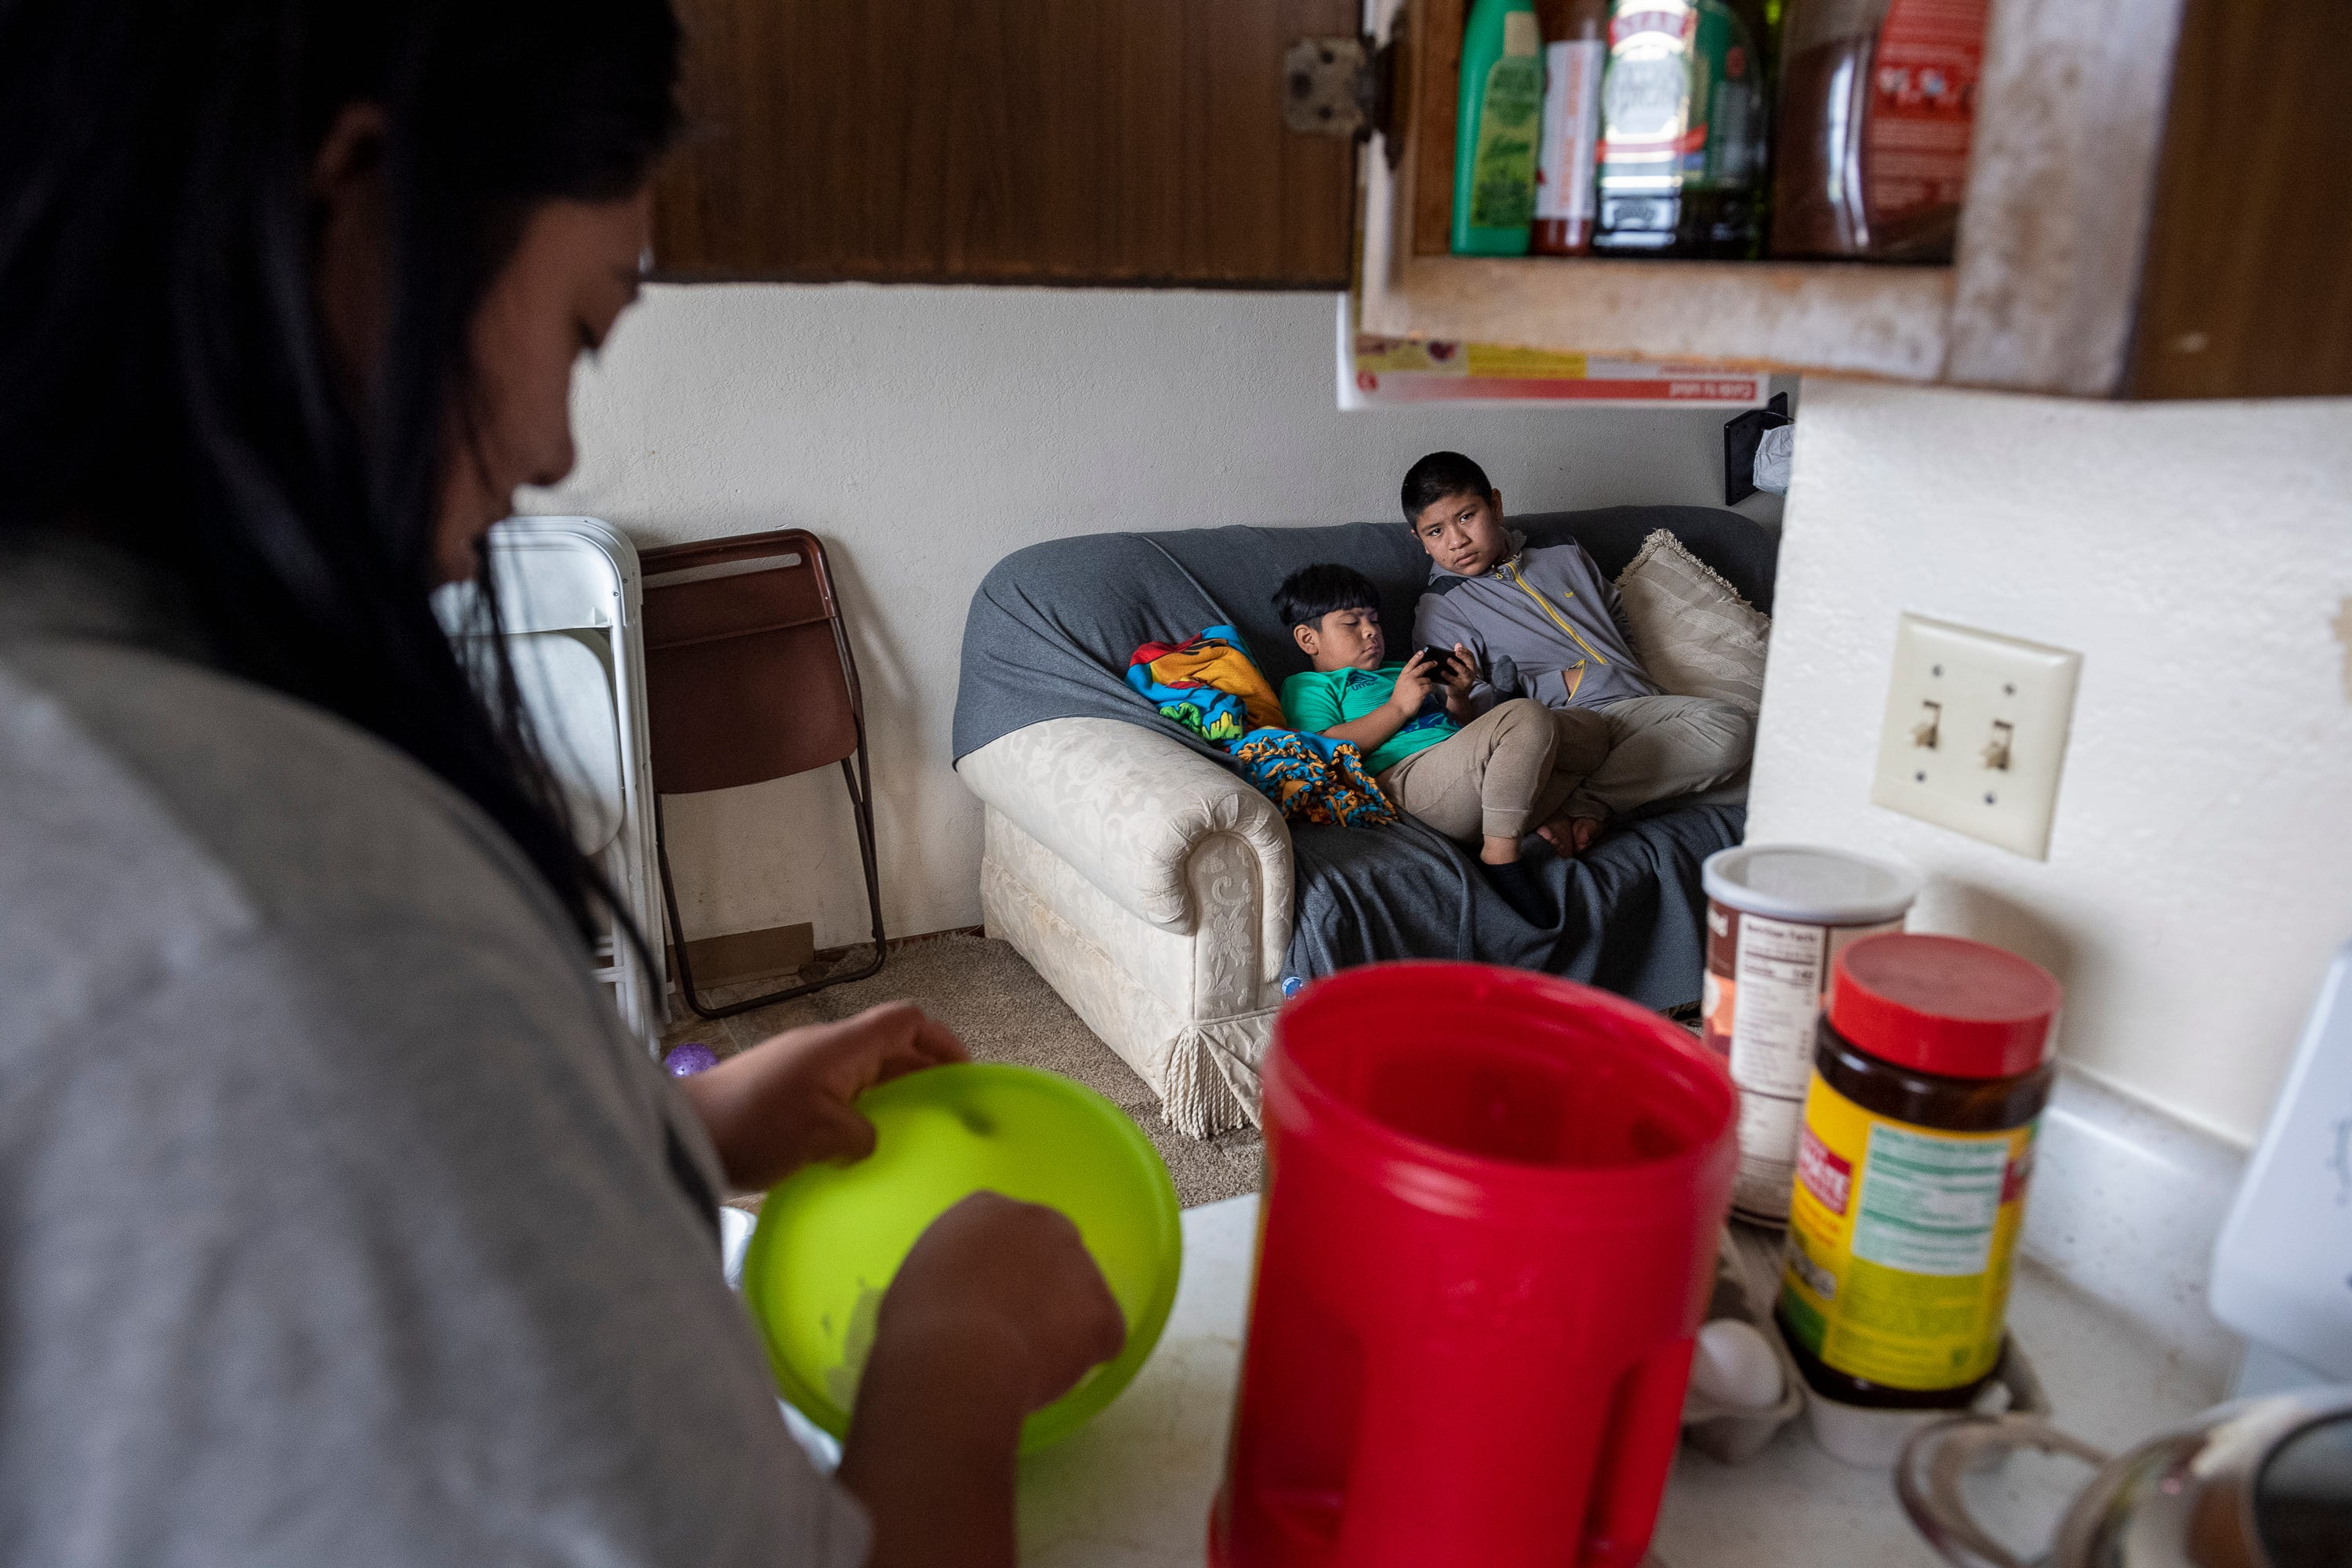 Resi Salvador, left, whisks pancake batter on a Sunday morning as her two younger brothers sit on the couch in Salinas on May 31, 2020.